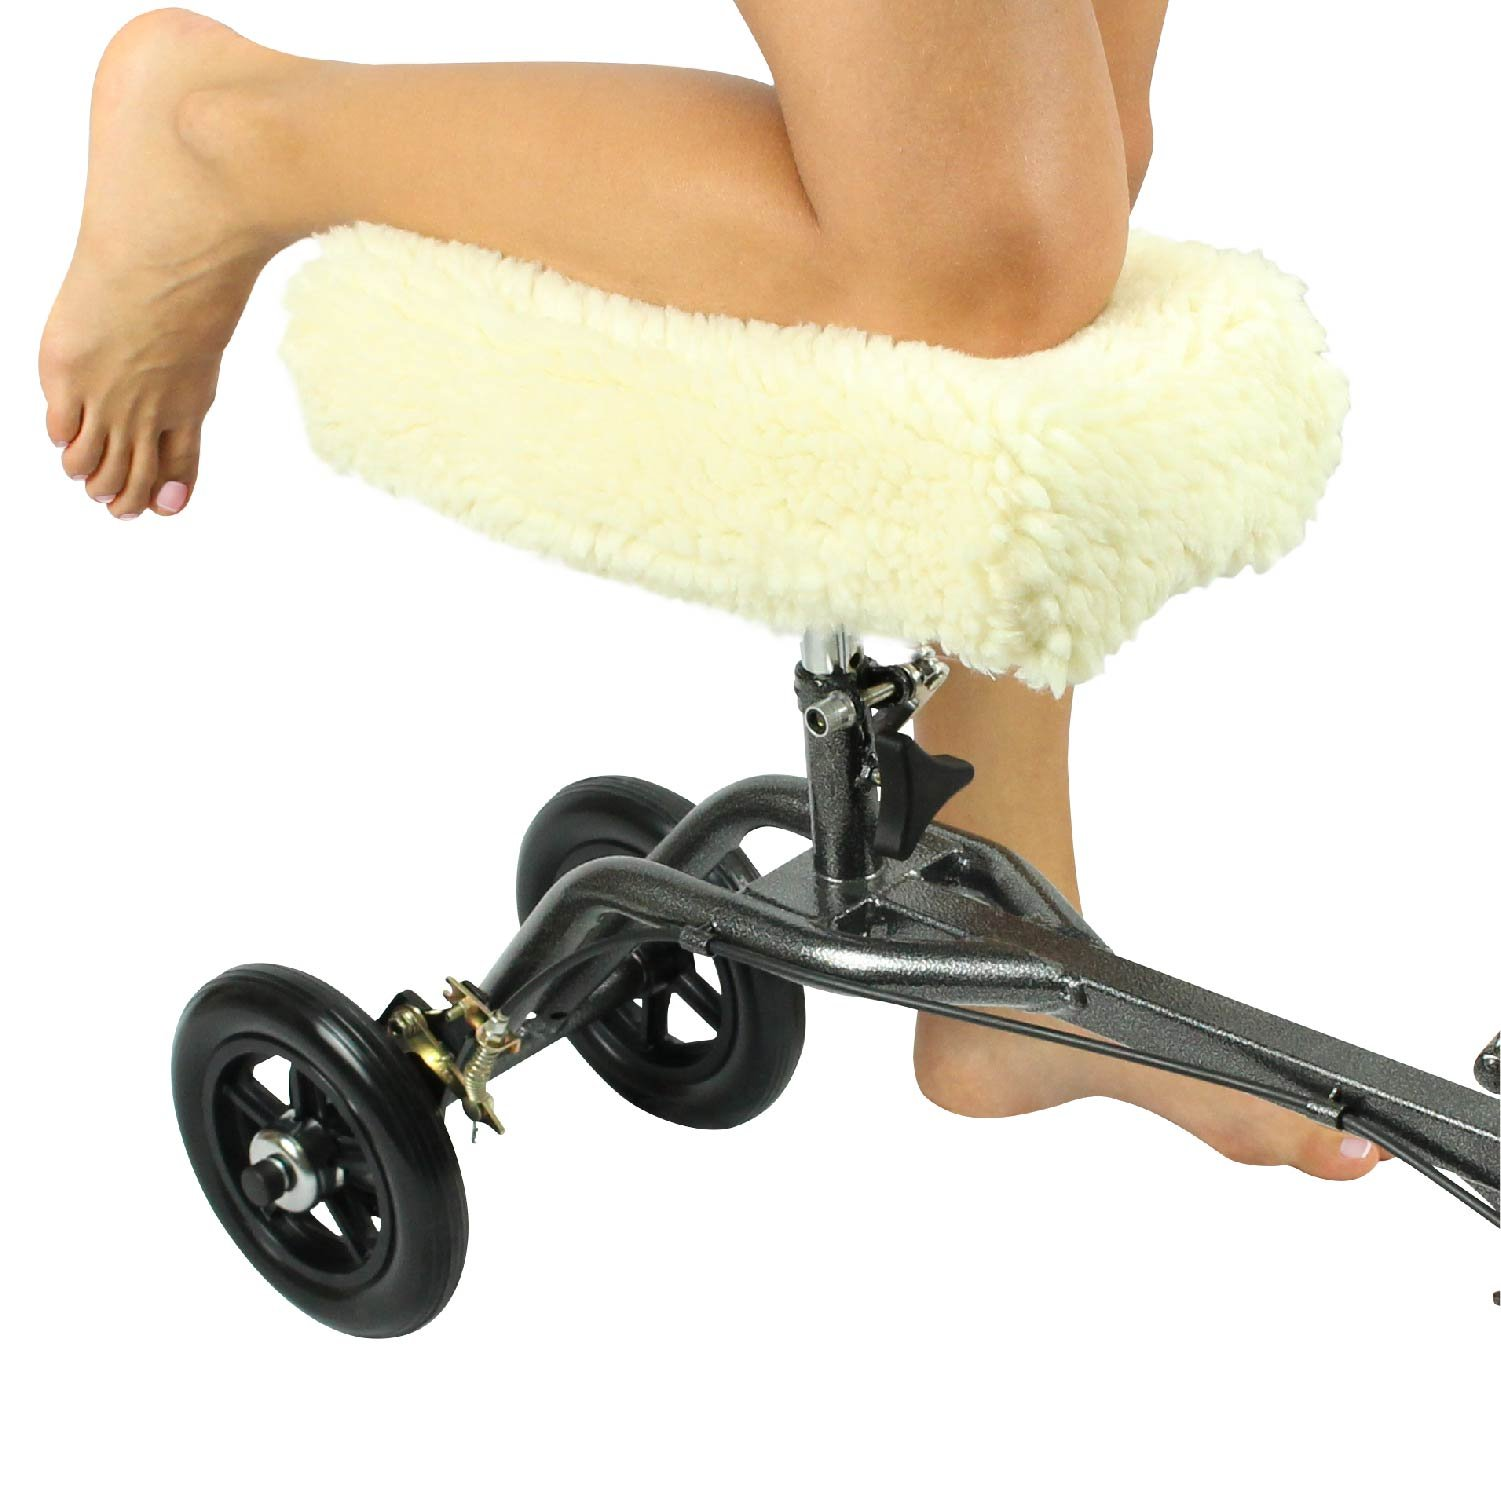 Knee Walker Pad Cover by Vive - Plush Synthetic Faux Sheepskin Sheepette Accessory for Knee Scooter and Roller - Improves Leg Cart Comfort During Injury - Padding Easily Attaches To Most Walkers